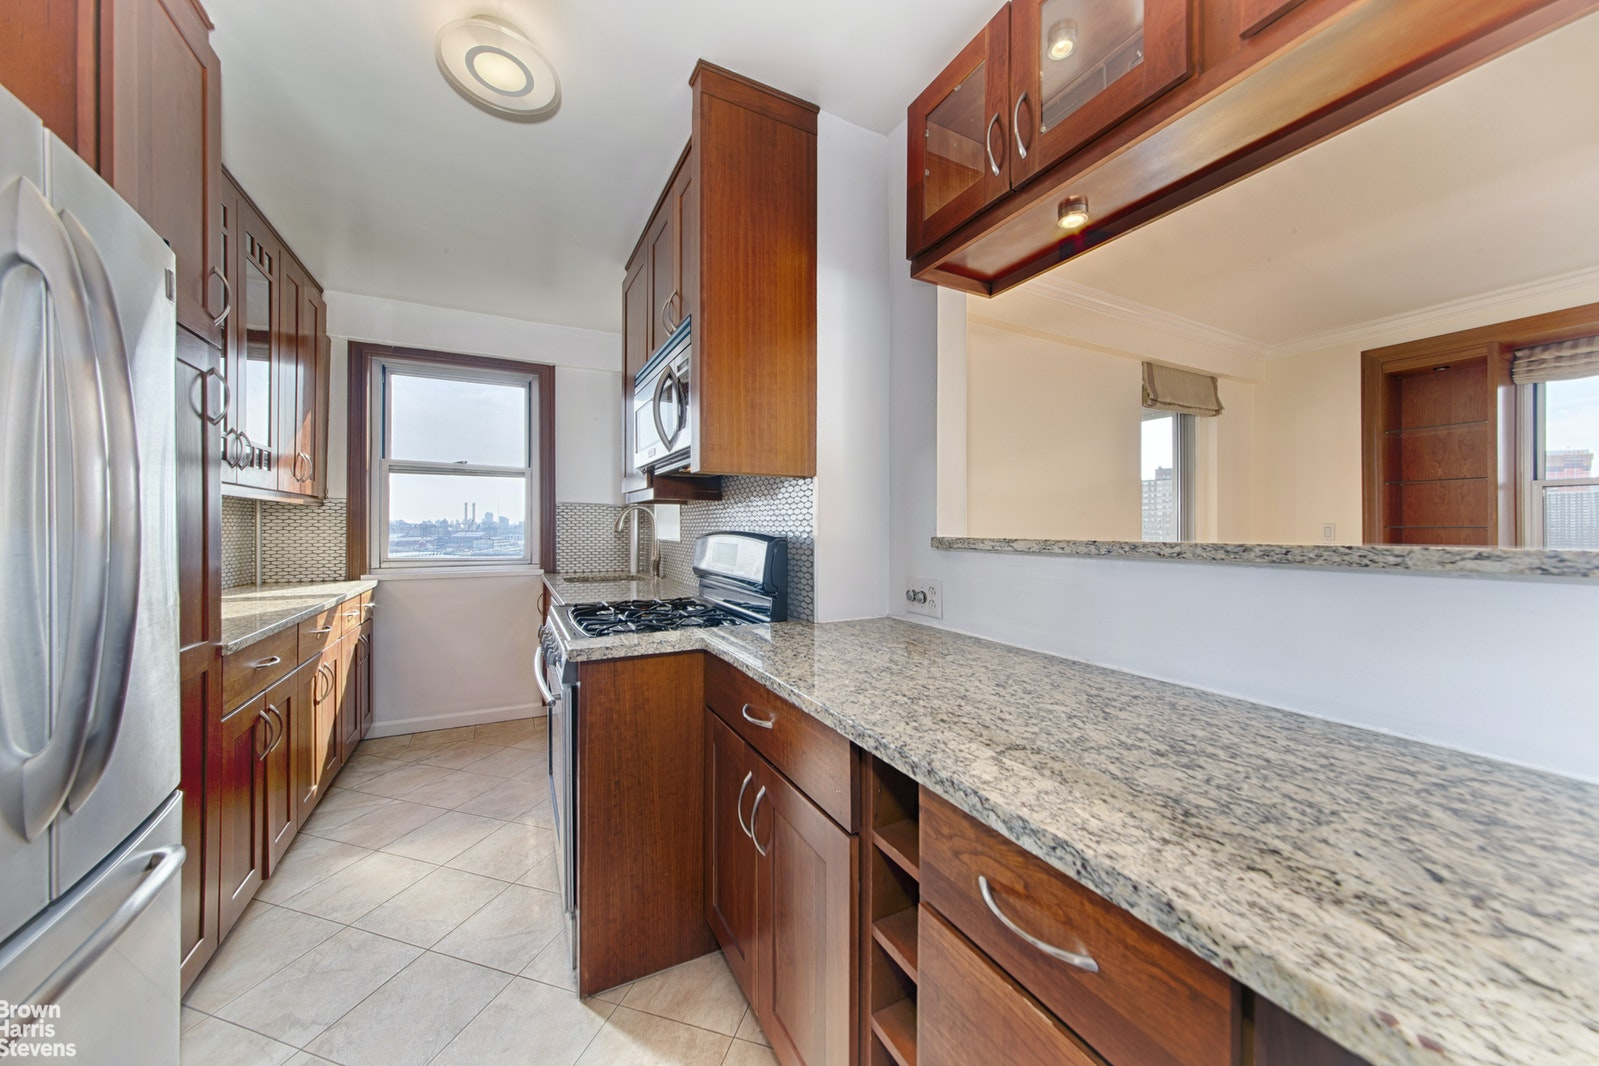 453 Fdr Drive, Lower East Side, NYC, 10002, Price Not Disclosed, Rented Property, Halstead Real Estate, Photo 2